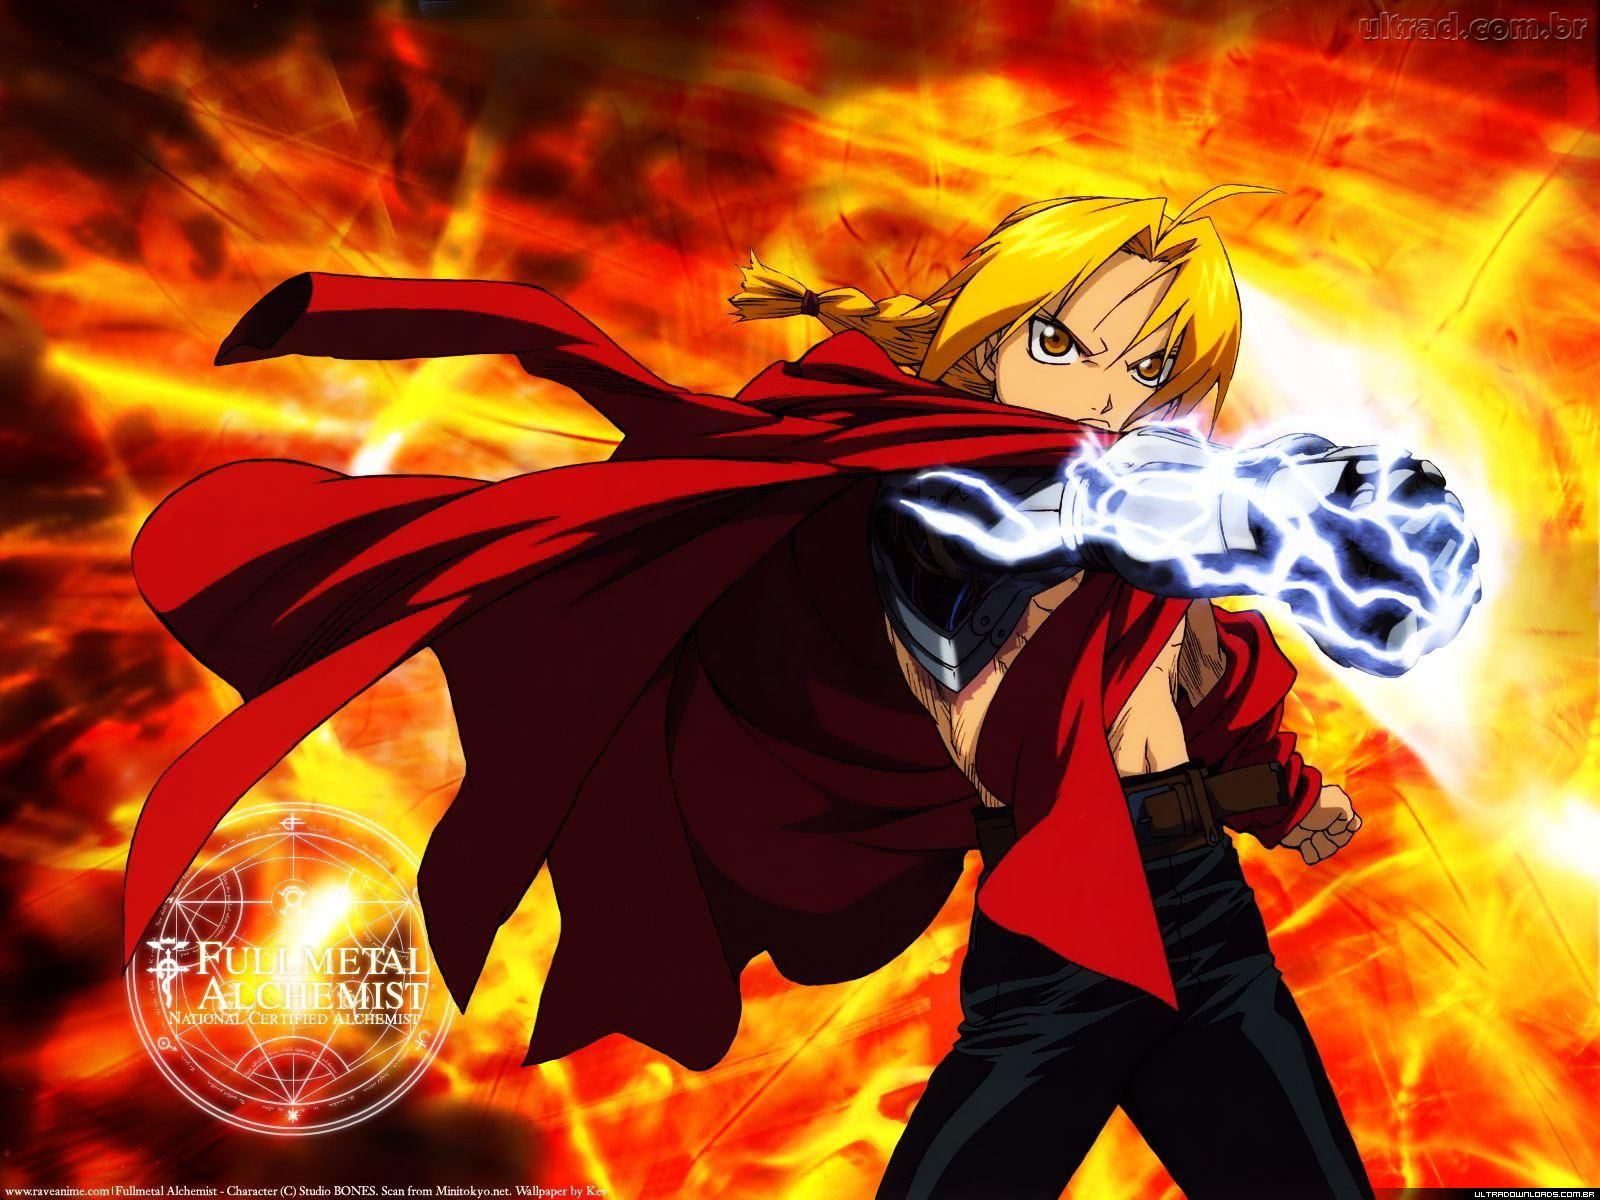 Full Metal Alchemist HD & Widescreen Wallpaper 0.254627039180417